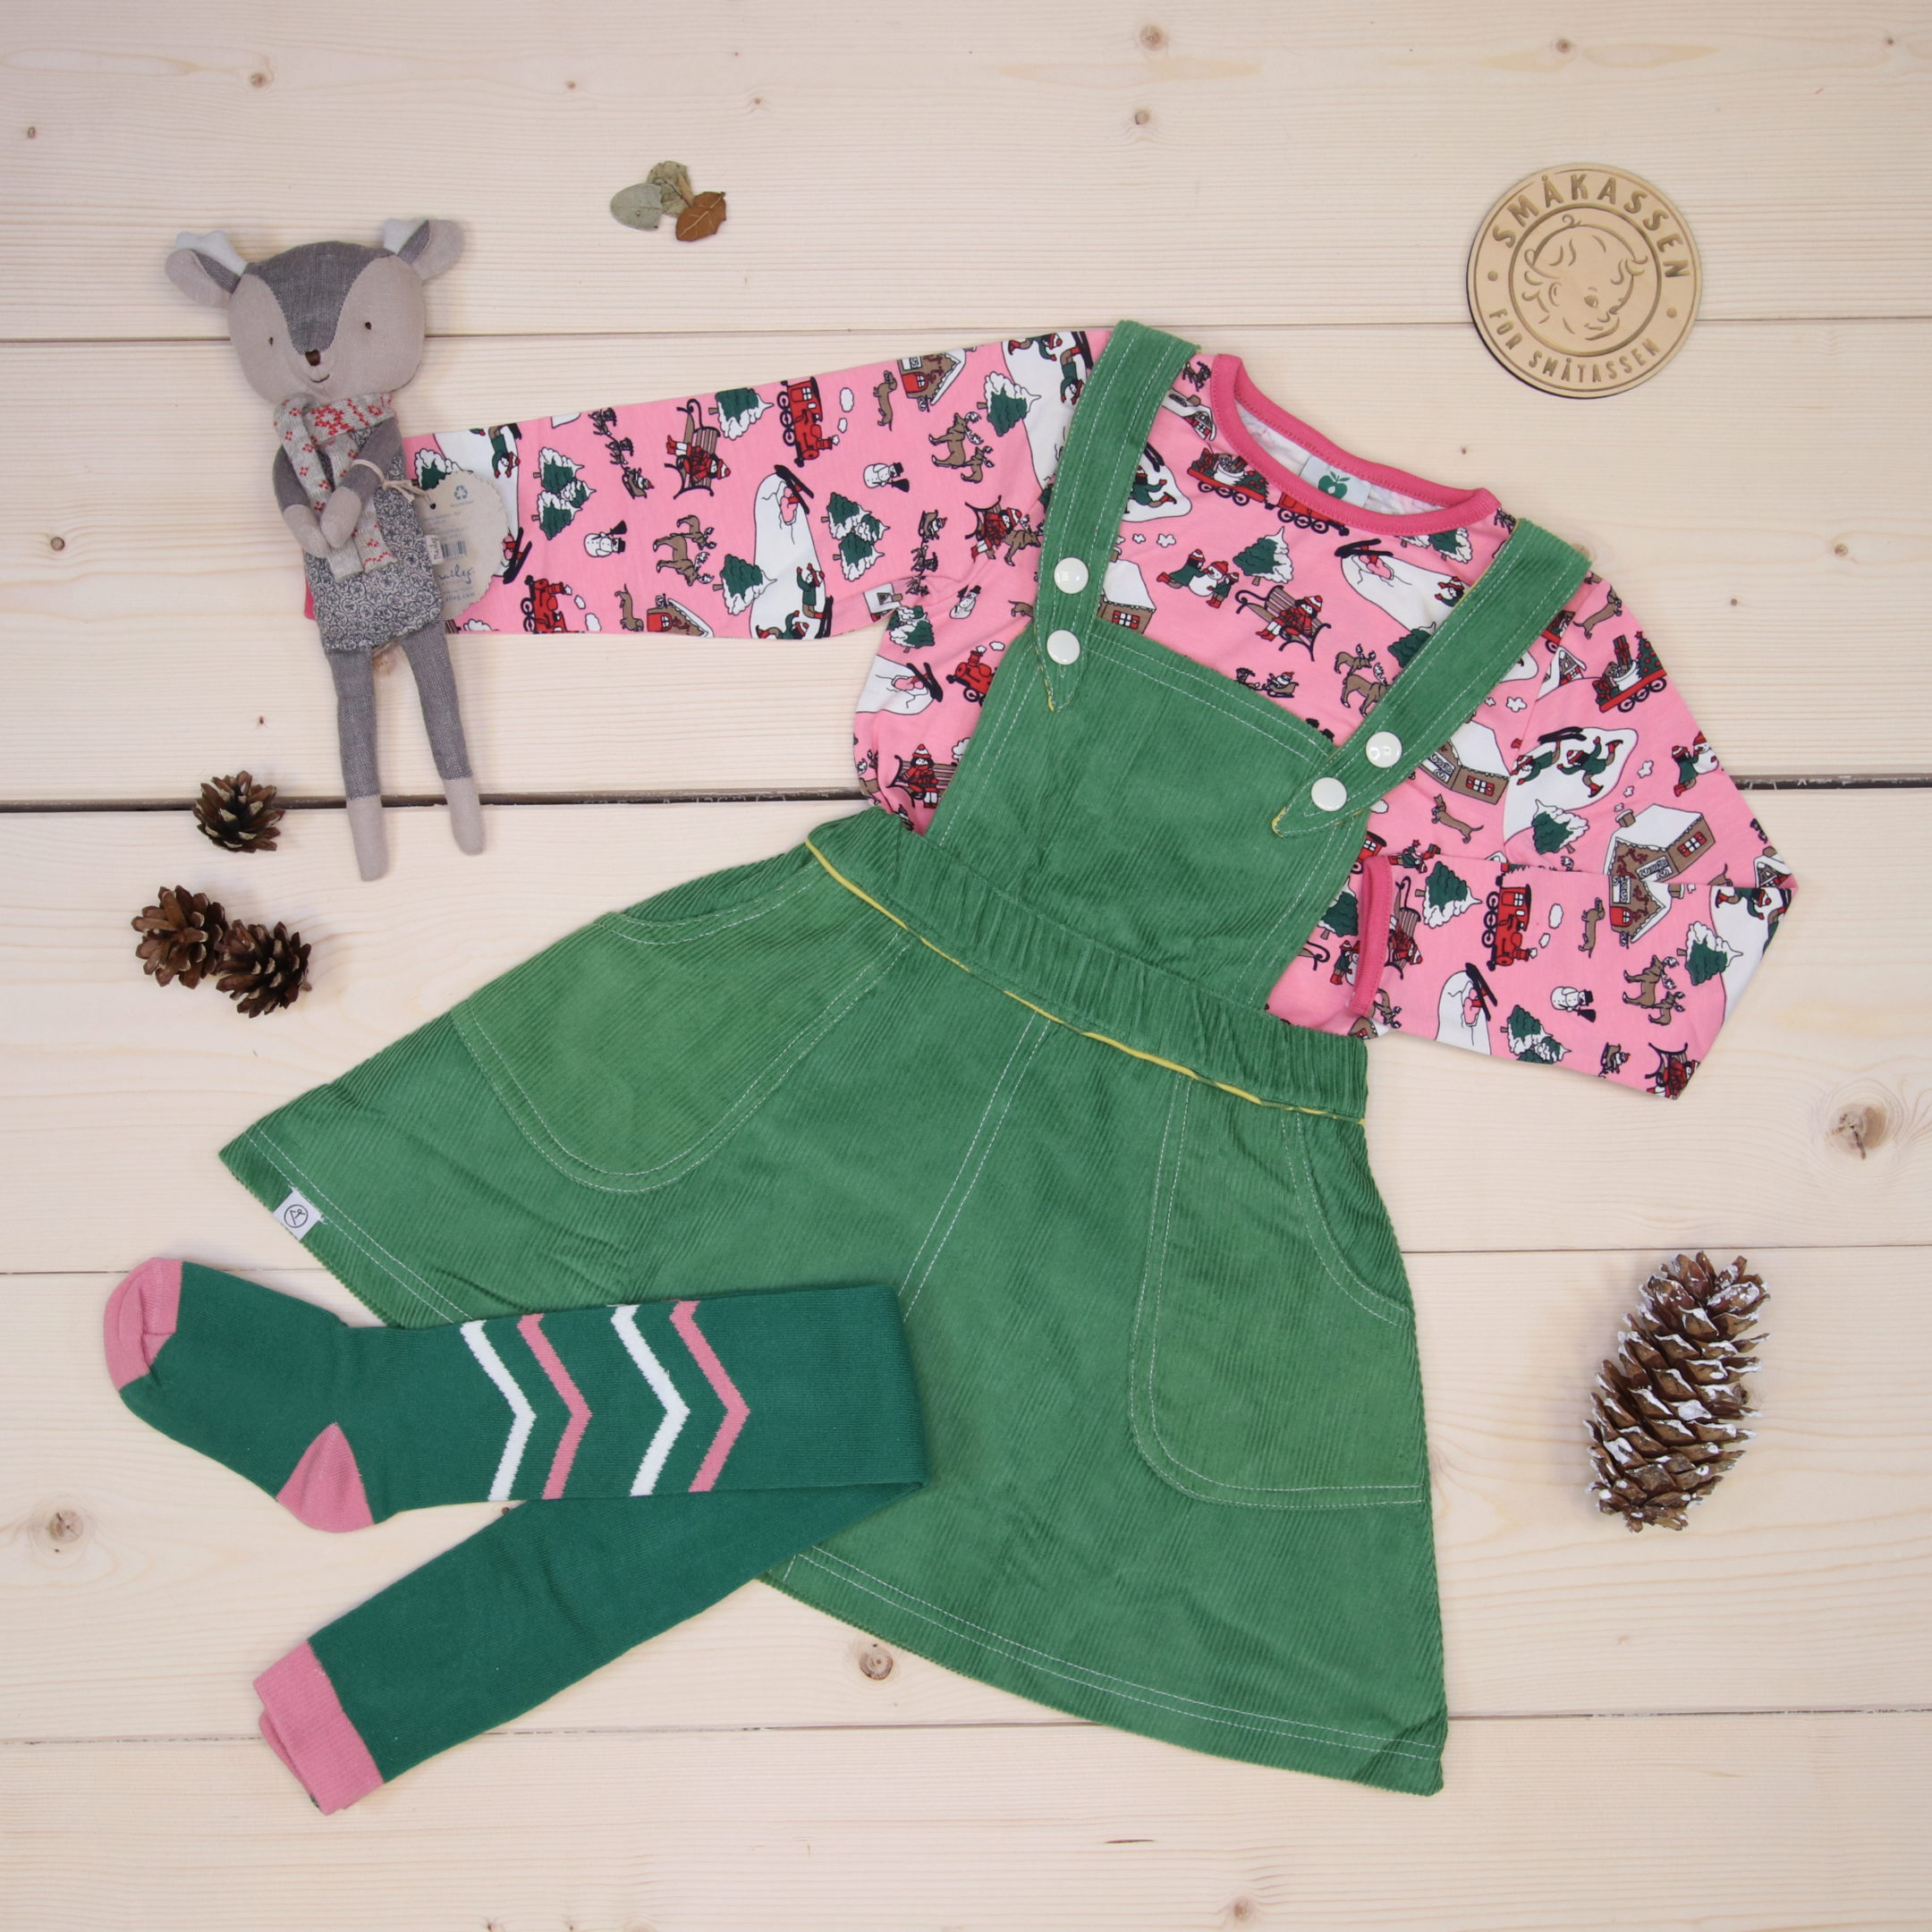 Småfolk and Alba combined makes a cool Christmas outfit 💚💗❤️  This is Småkassen that we prepared for a girl in the styles cute, cool, and colorful in size 98.